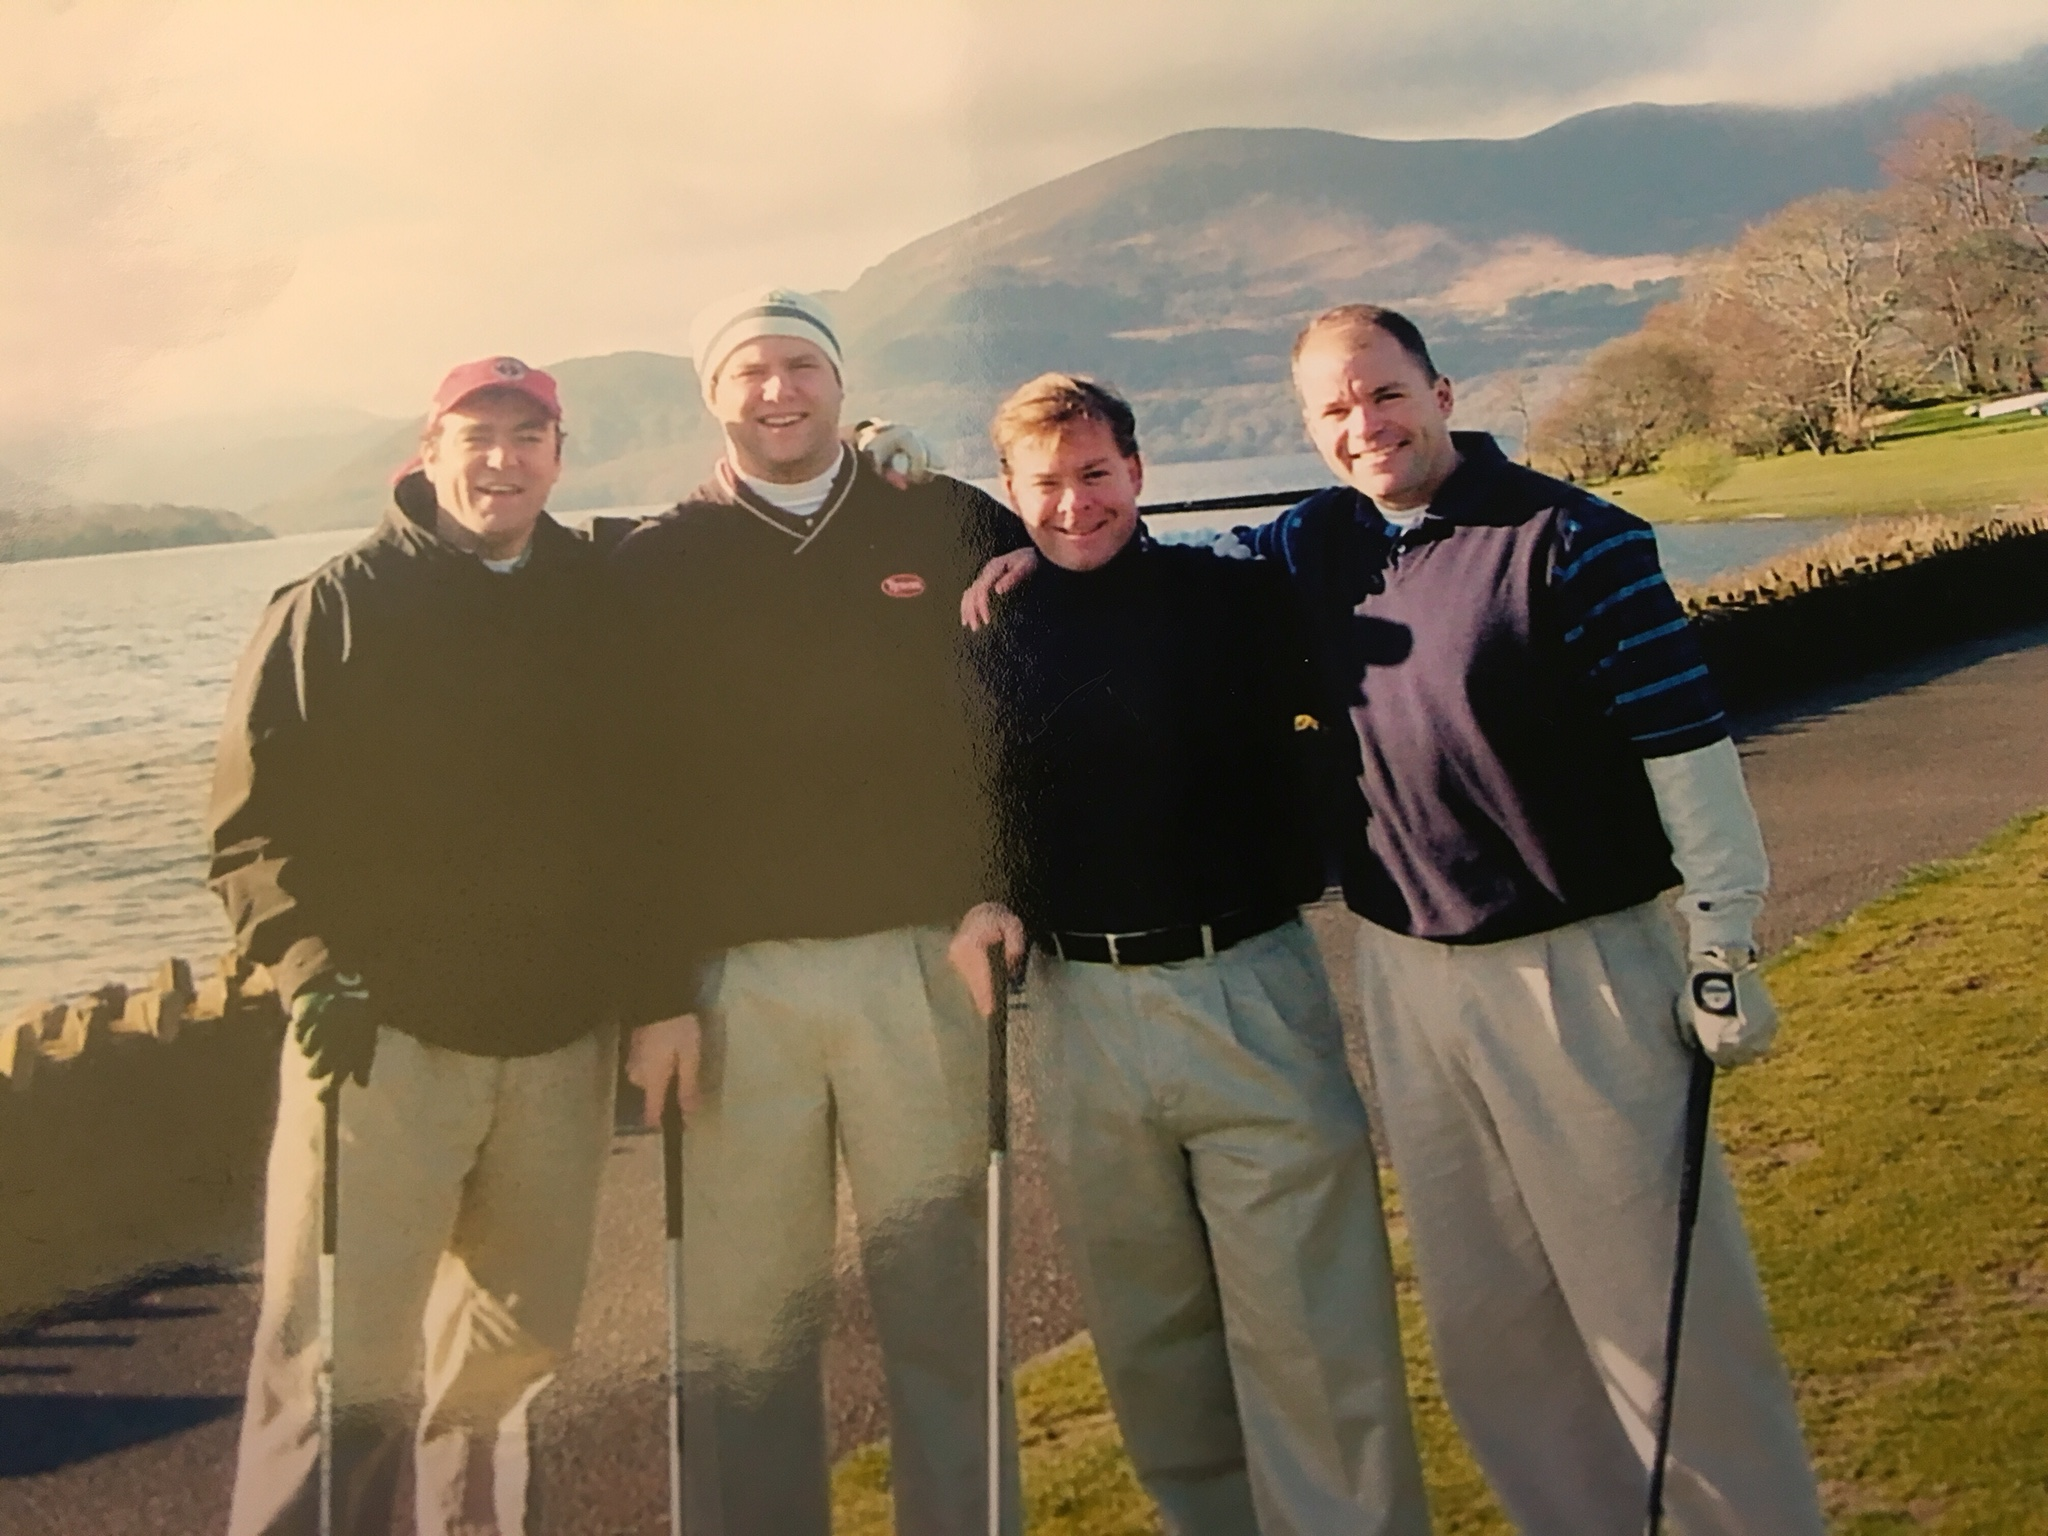 Keegan, second from right, golfing with friends in Ireland. (Courtesy Dan Keegan)